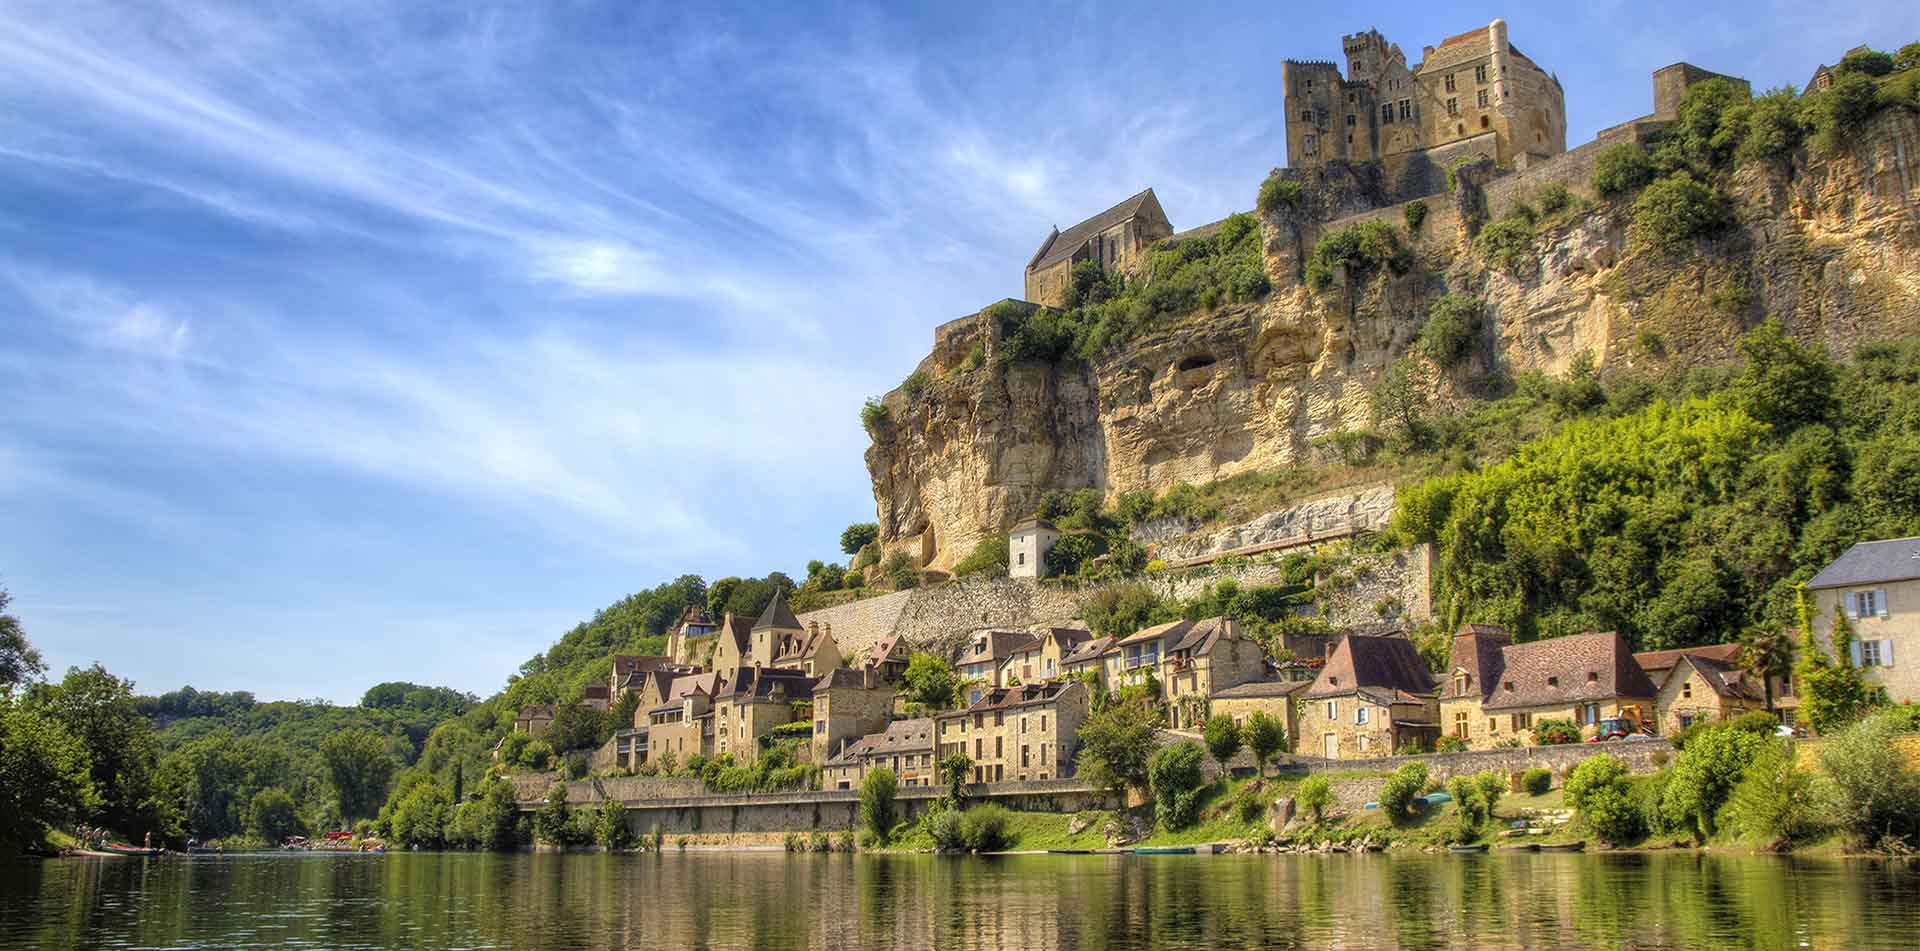 Europe France Bordeaux green meadows medieval quaint beautiful coastline - luxury vacation destinations